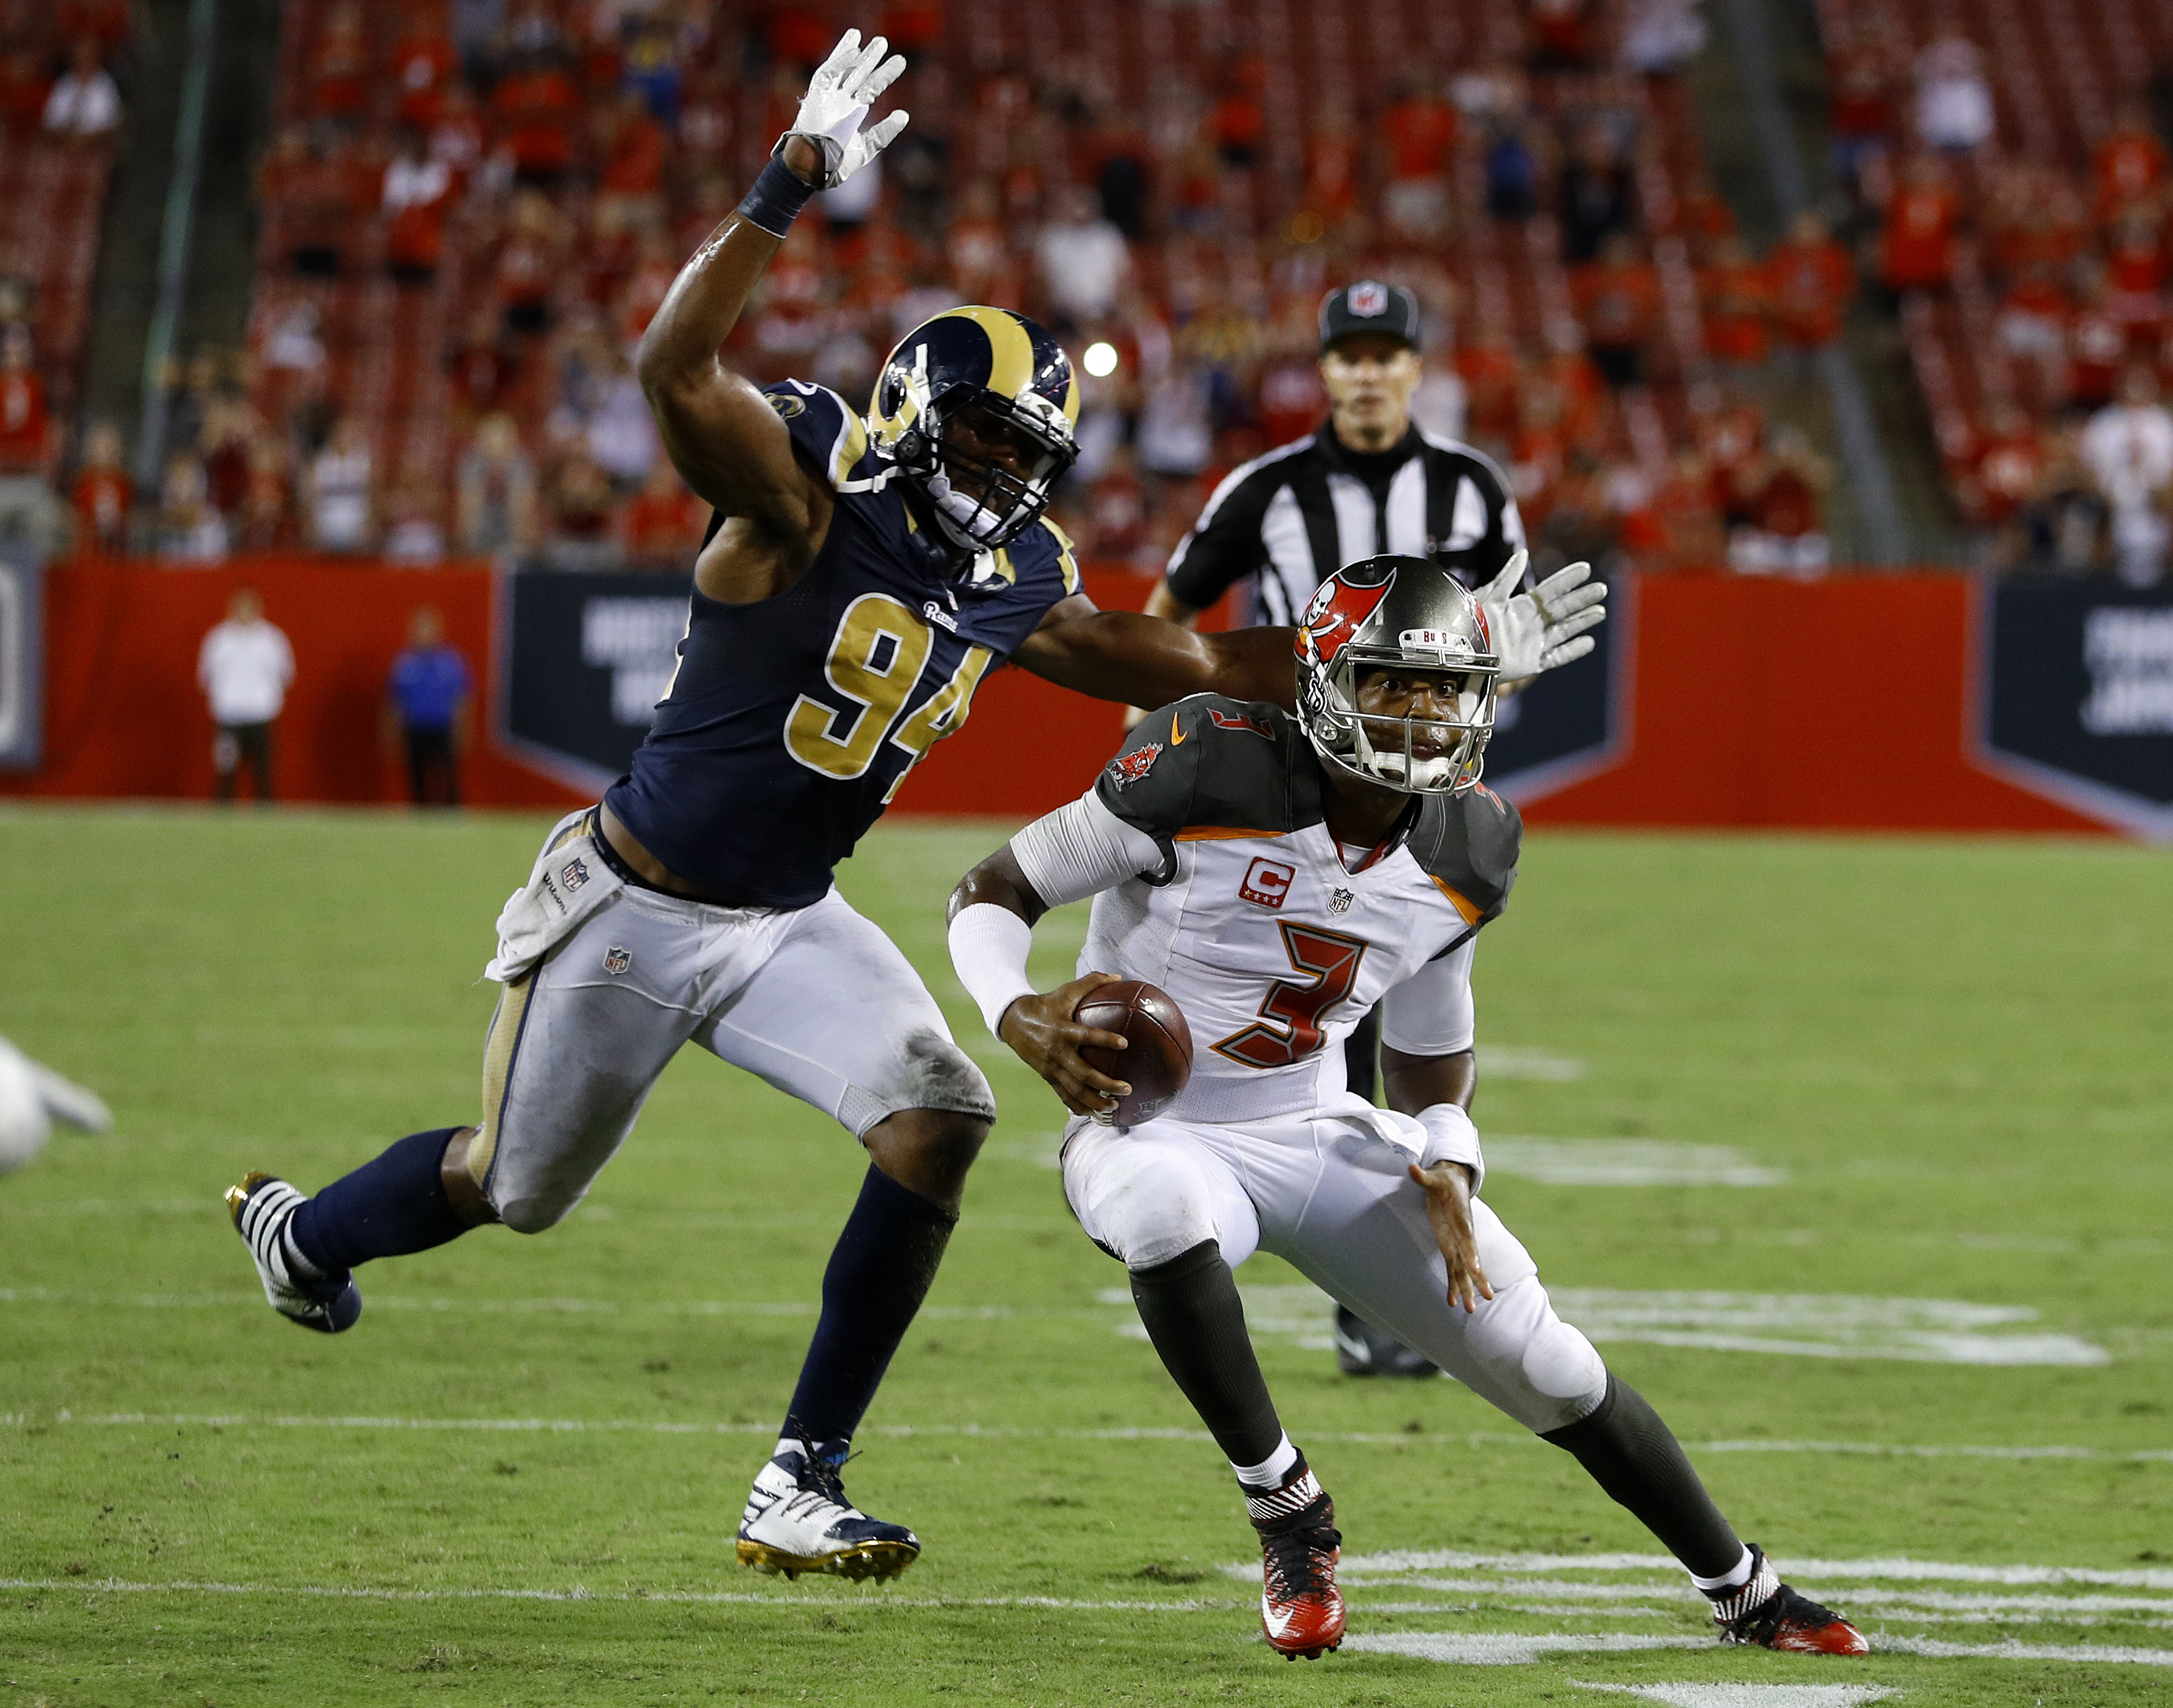 Tampa Bay Buccaneers quarterback Jameis Winston (3) is chased by Los Angeles Rams defensive end Robert Quinn (94) during the final play of an NFL football game Sunday, Sept. 25, 2016, in Tampa, Fla. The Rams defeated the Buccaneers 37-32. (AP Photo/Scott